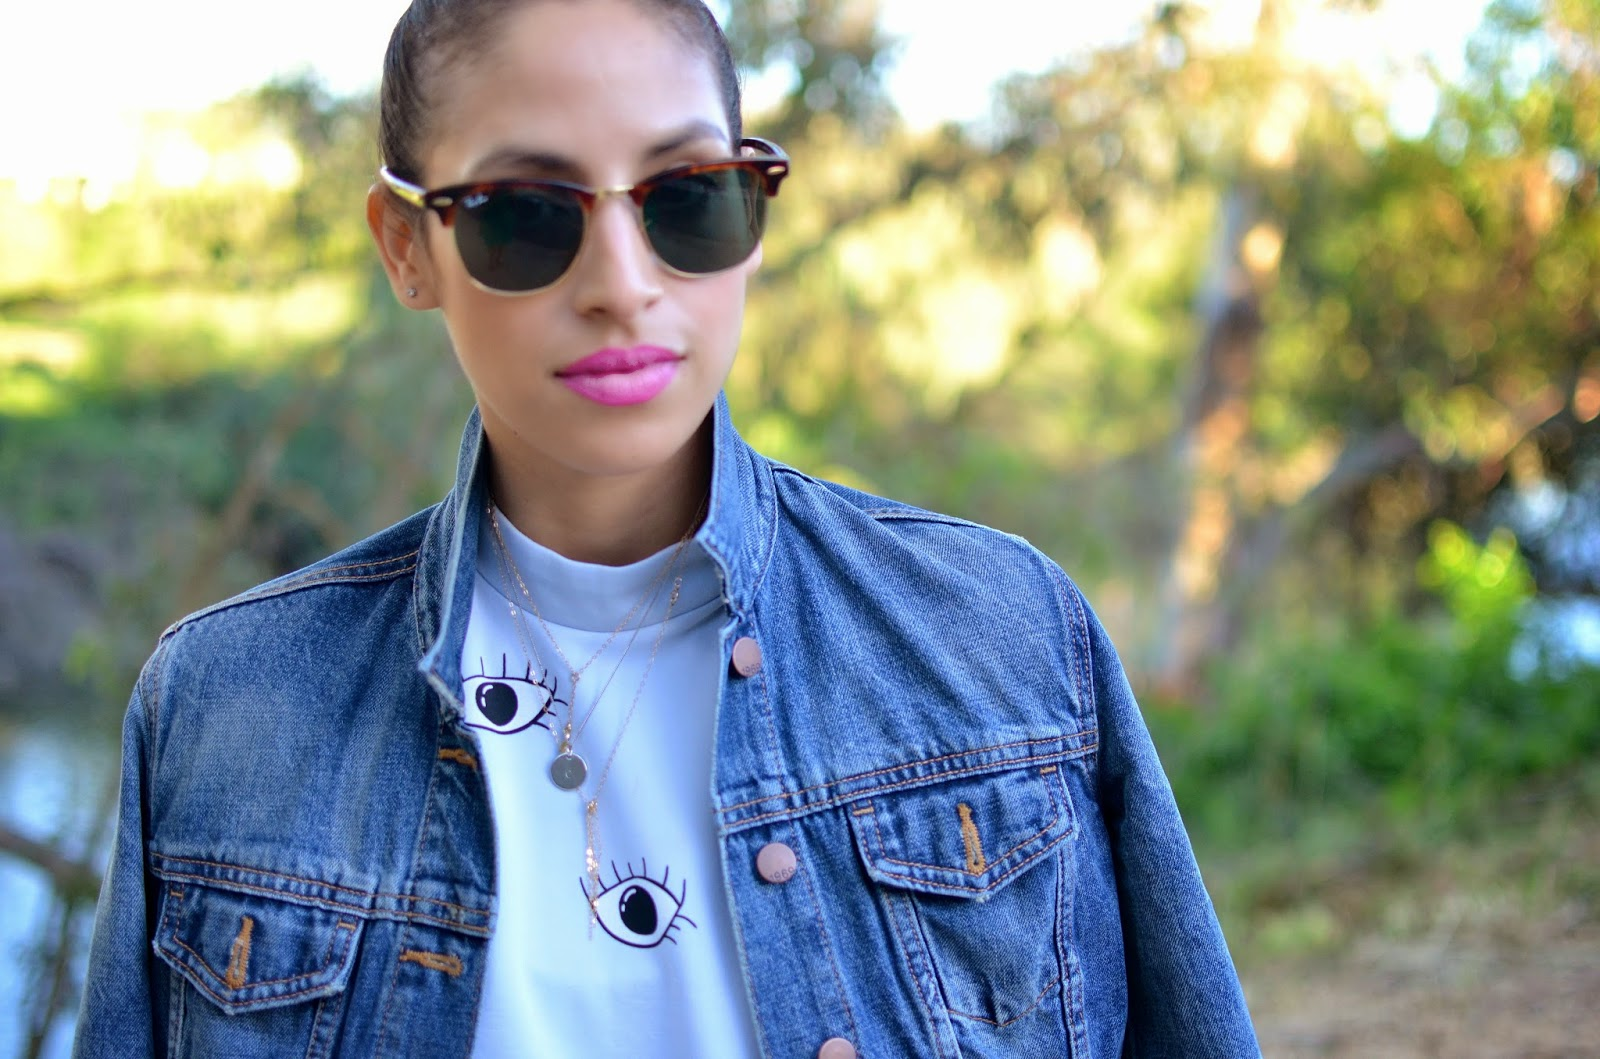 eye dress, evil eye dress, bright pink lipstick, pink lips for spring, ray ban clubmasters, layered dainty necklaces, denim jacket, spring style, SF style, napa style, spring dress